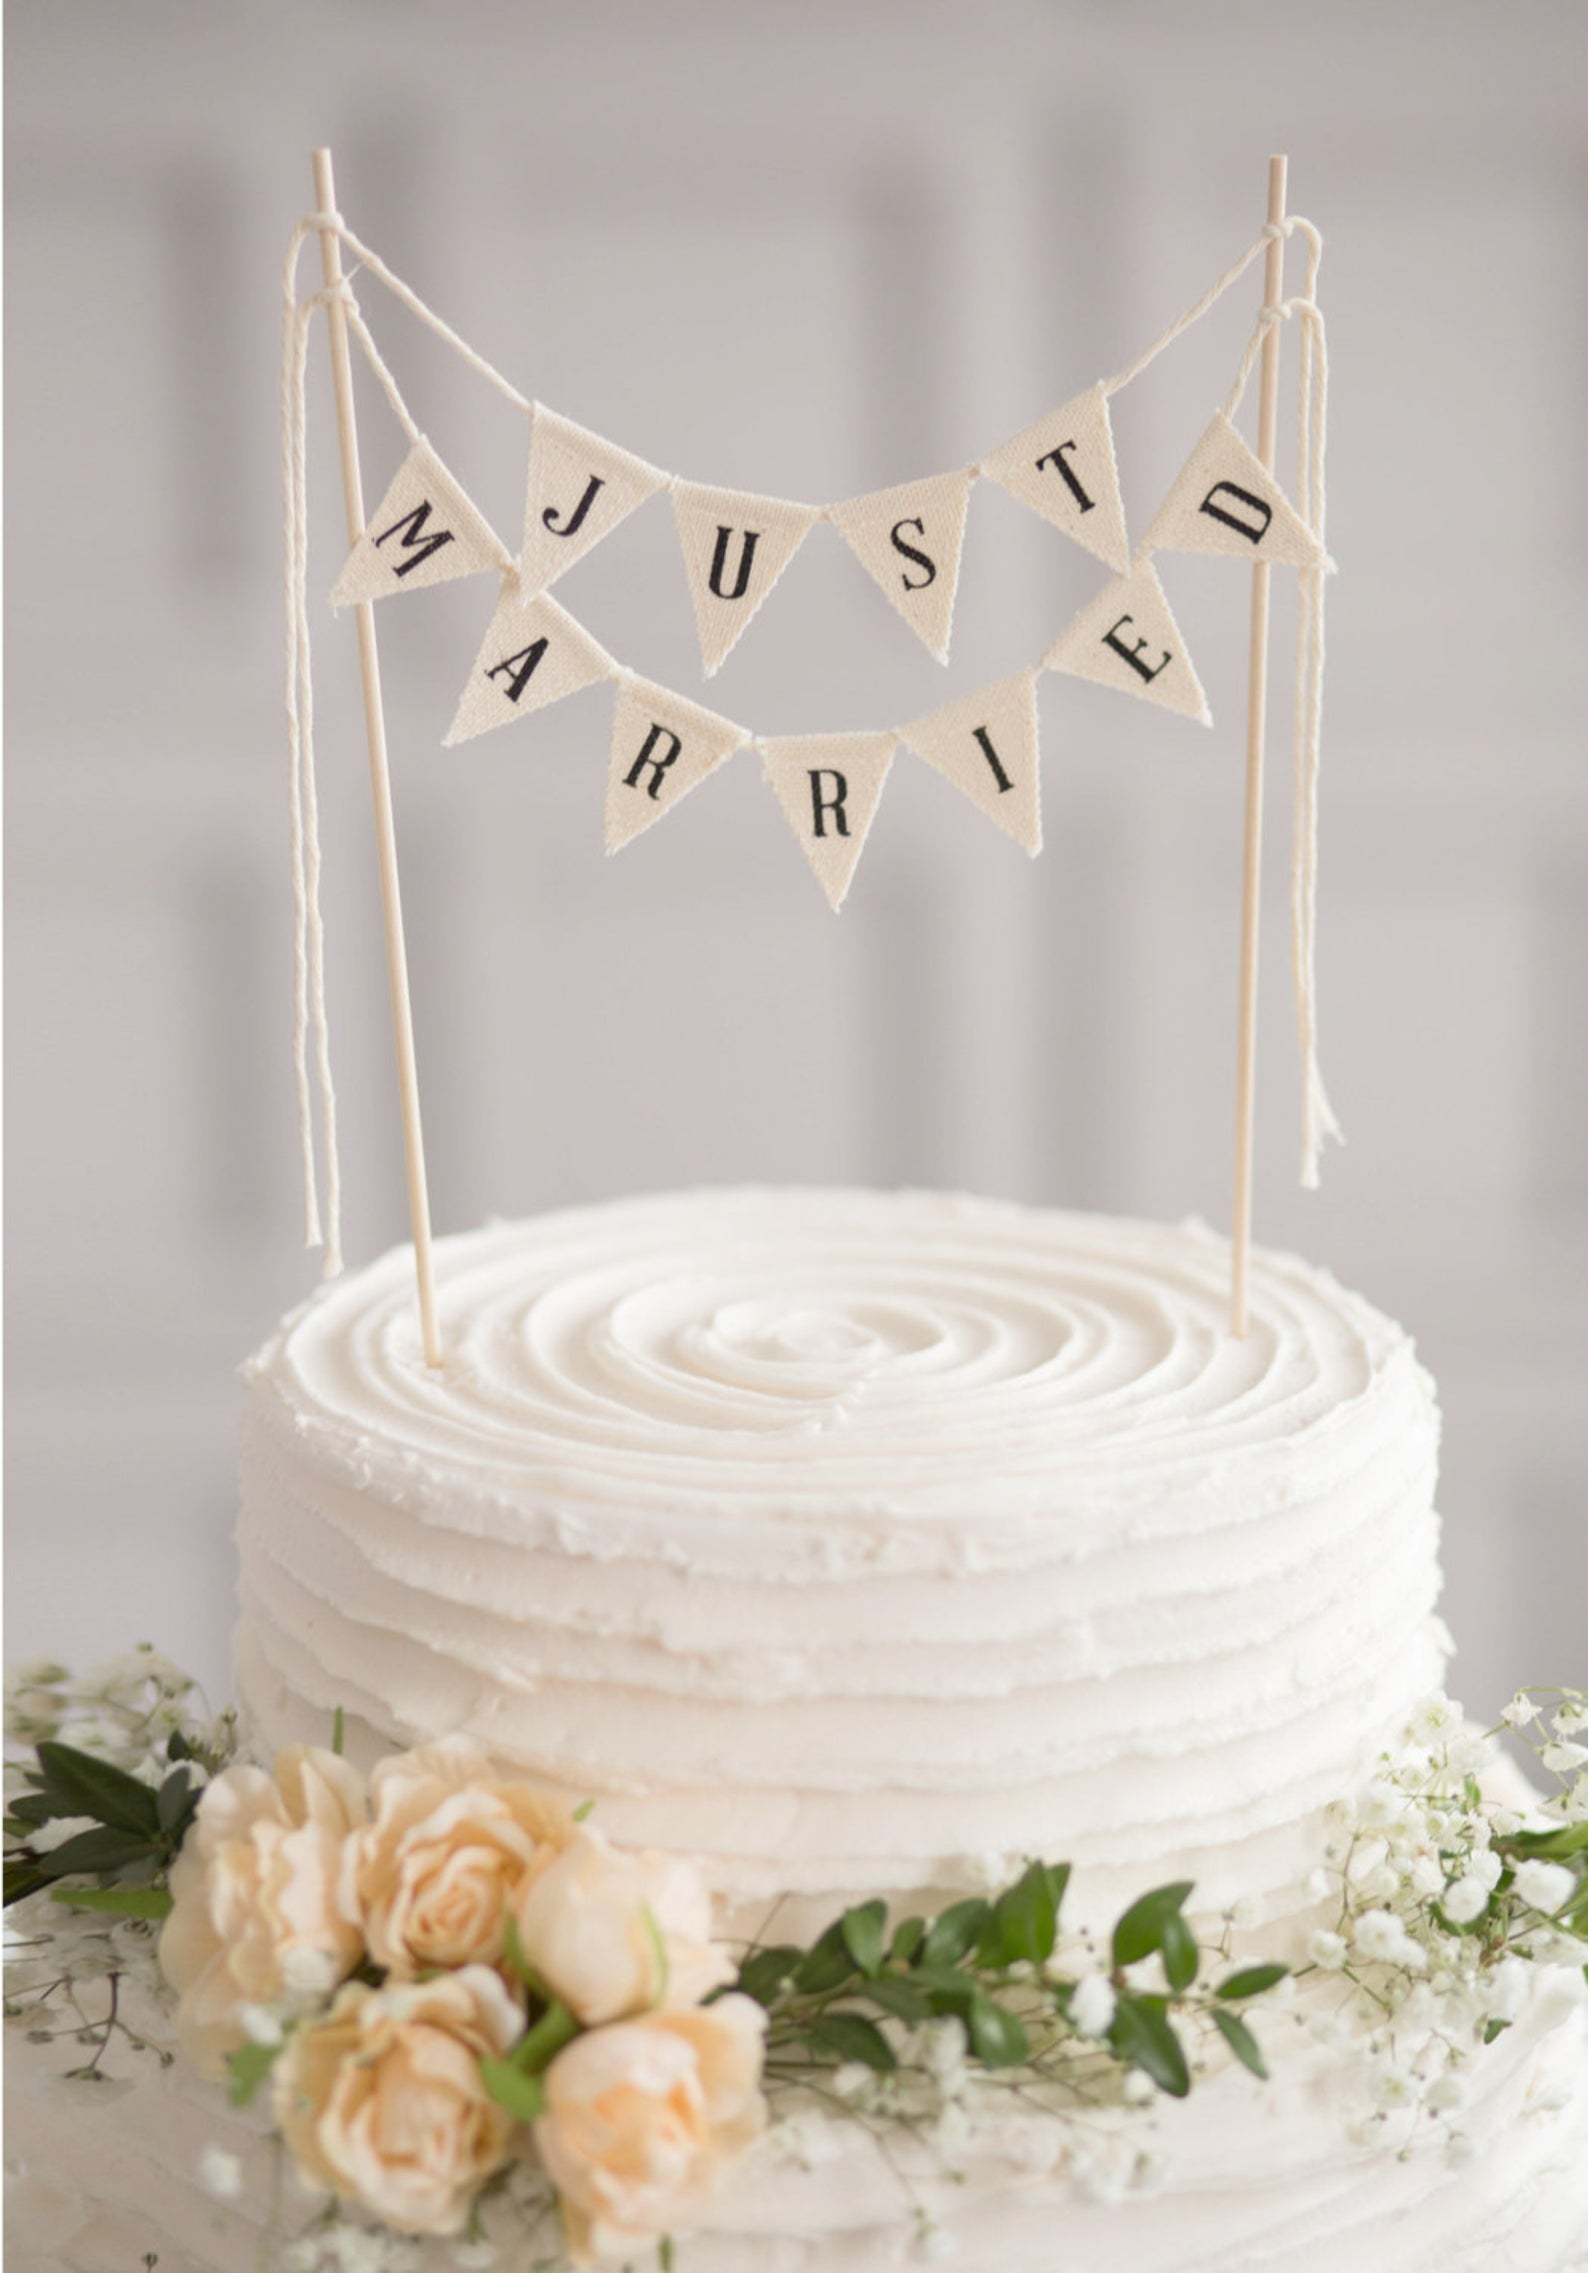 just married banner wedding cake topper